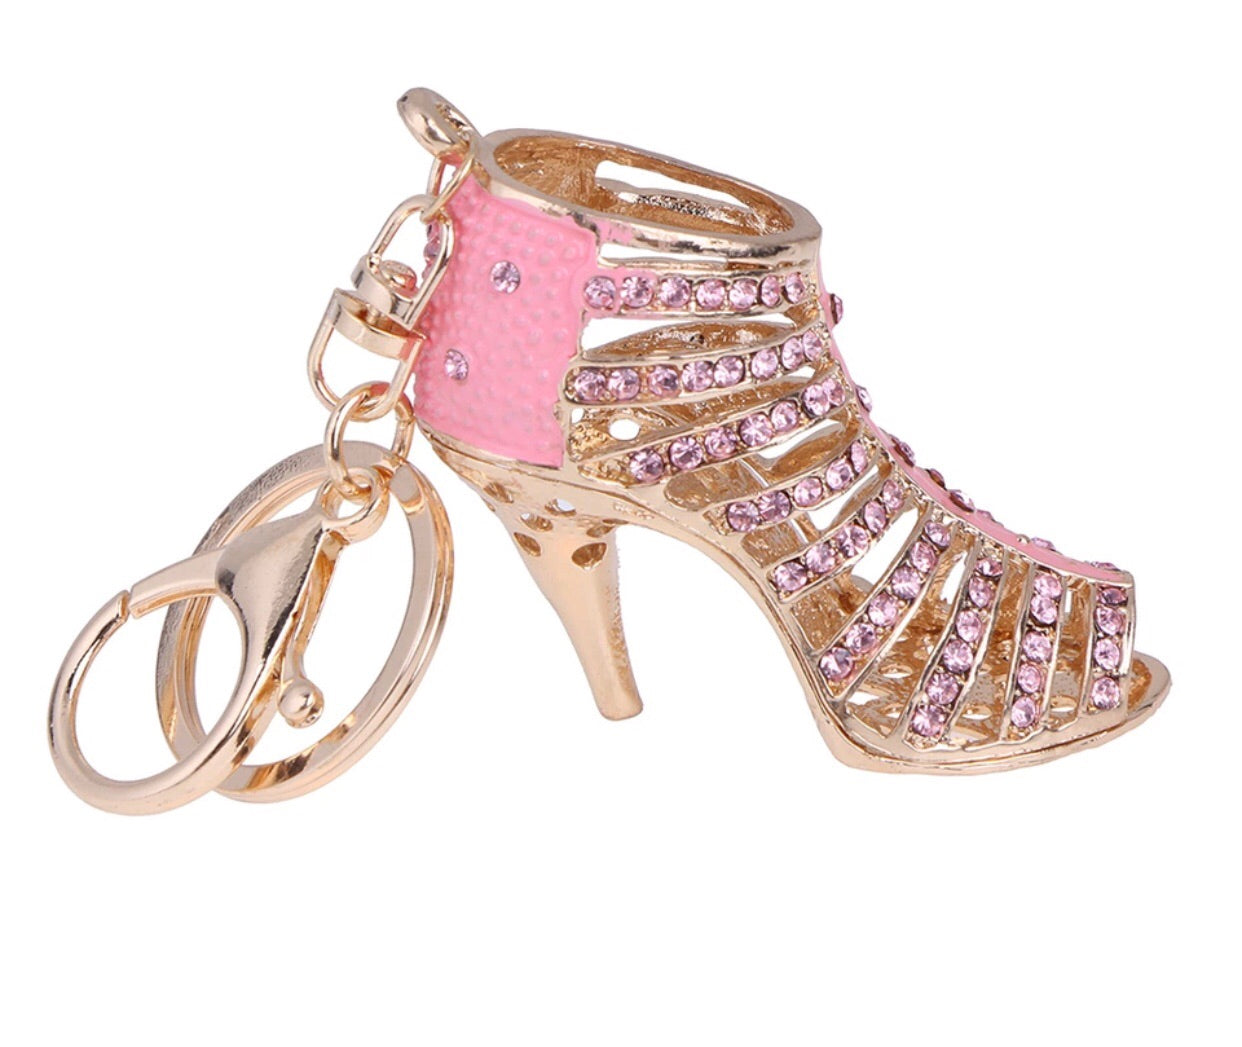 Beautiful pink high heel bag charm - Classy Pink Boutique